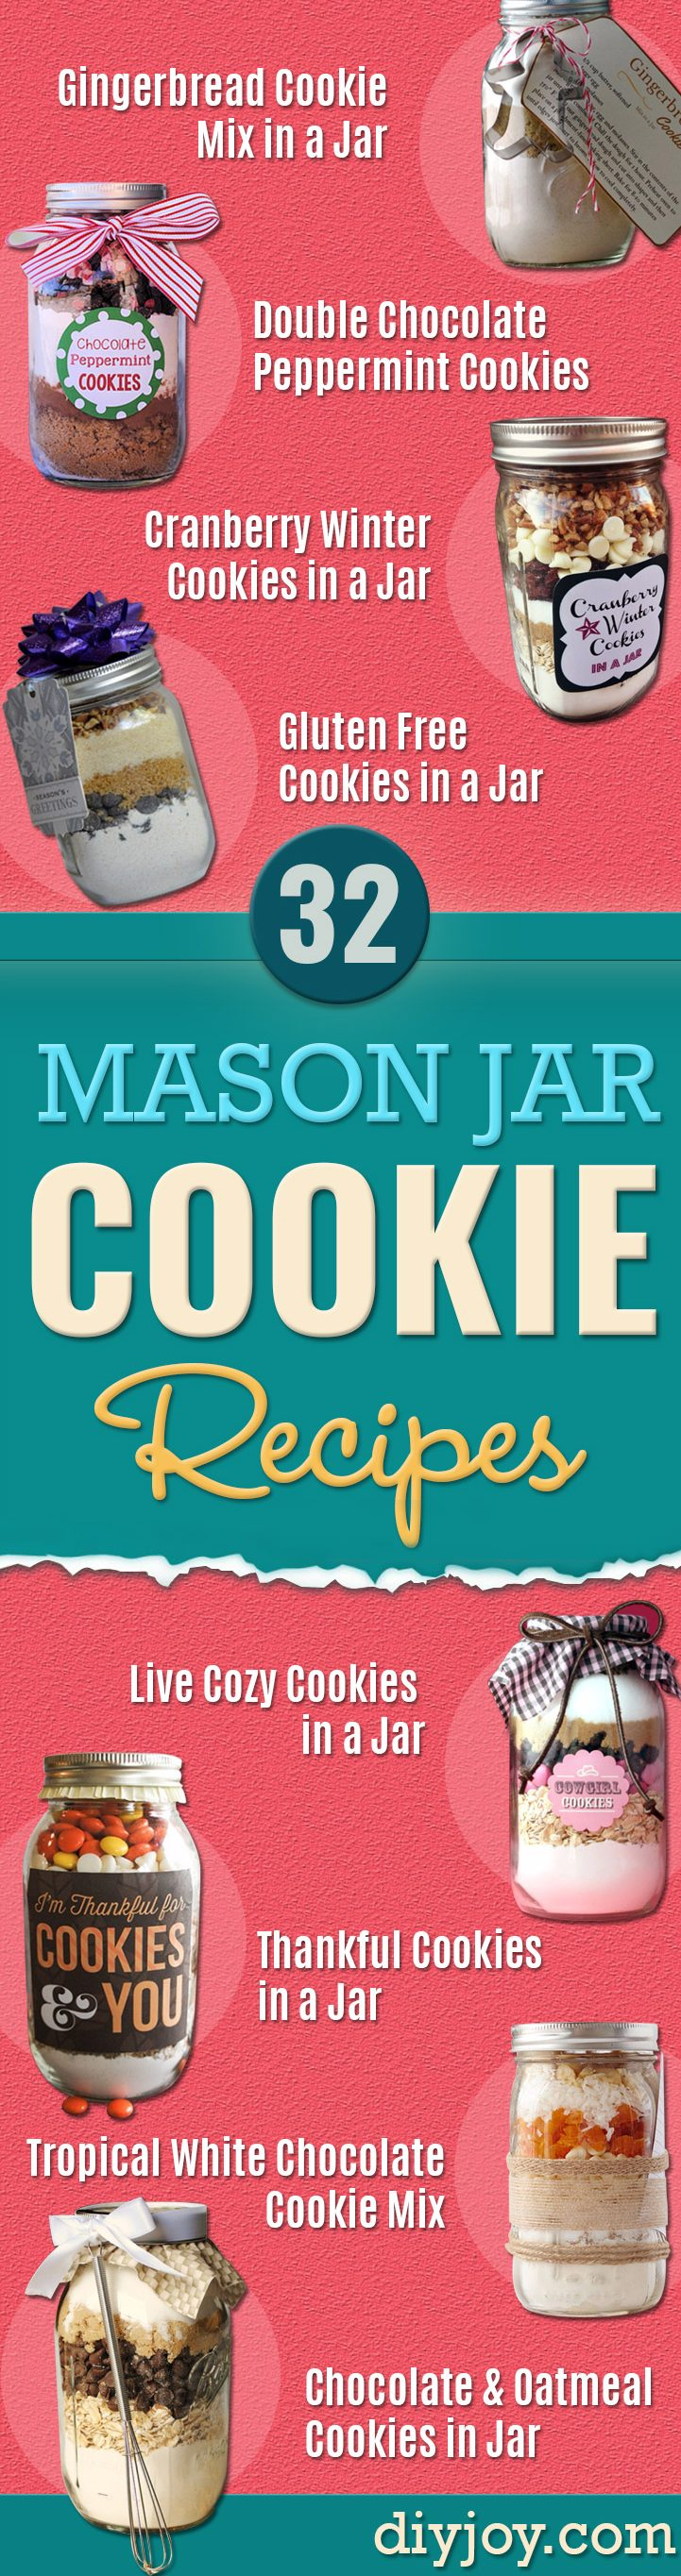 mason jar cookie recipes - Mason Jar Cookie Recipe Mix for Cute Decorated DIY Gifts - Easy Chocolate Chip Recipes, Christmas Presents and Wedding Favors in Mason Jars - Fun Ideas for DIY Parties and Cheap Last Minute Gift Ideas for Friends #masonjar #cookies #diygifts